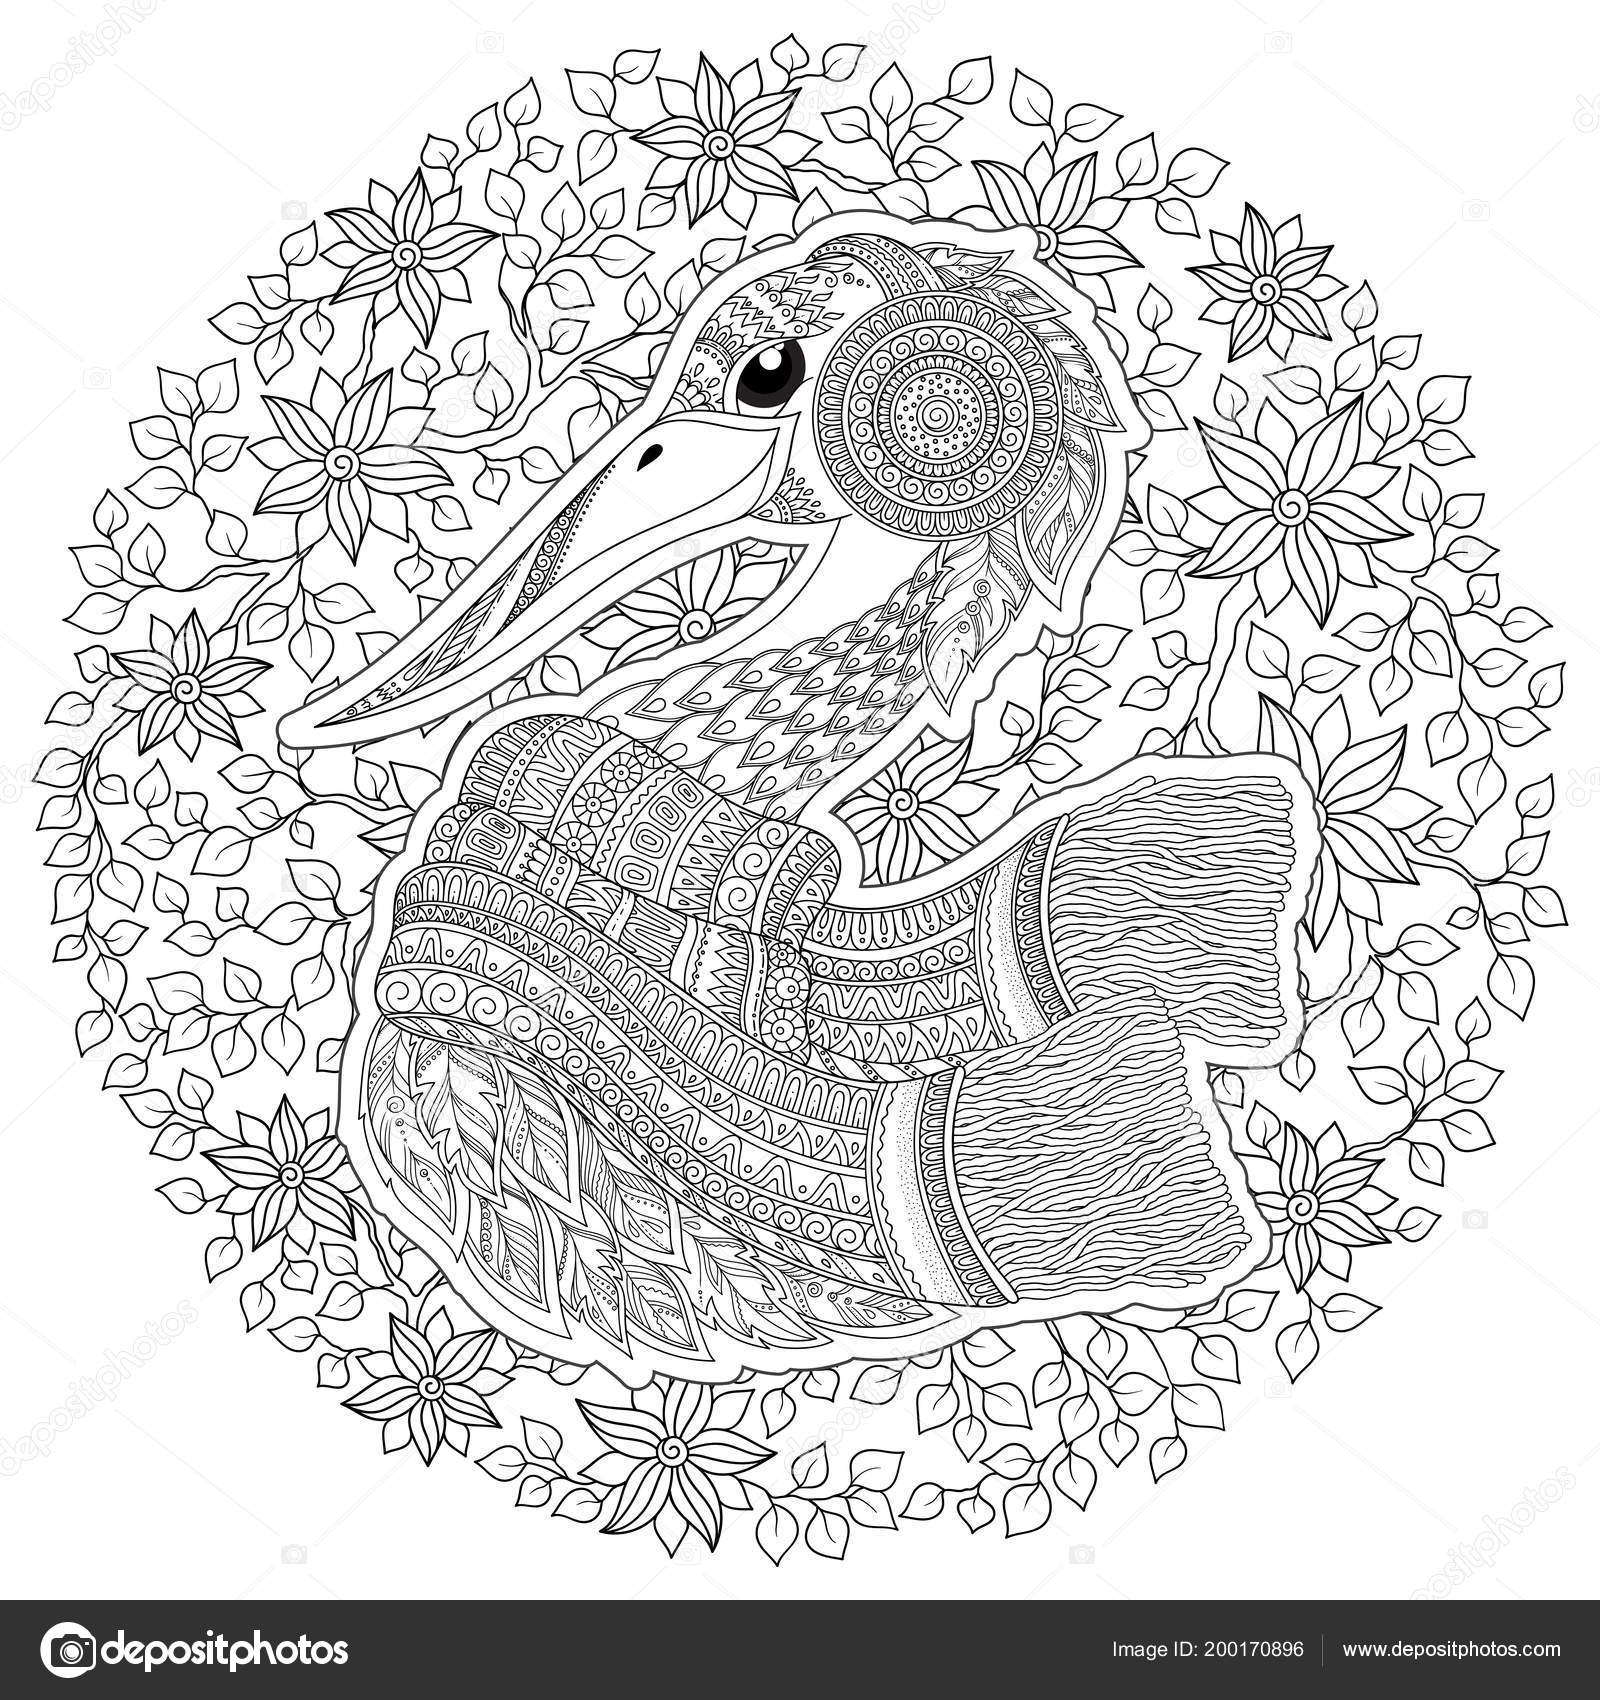 Stork Japanese Crane Coloring Book Adult Outline Drawing Coloring